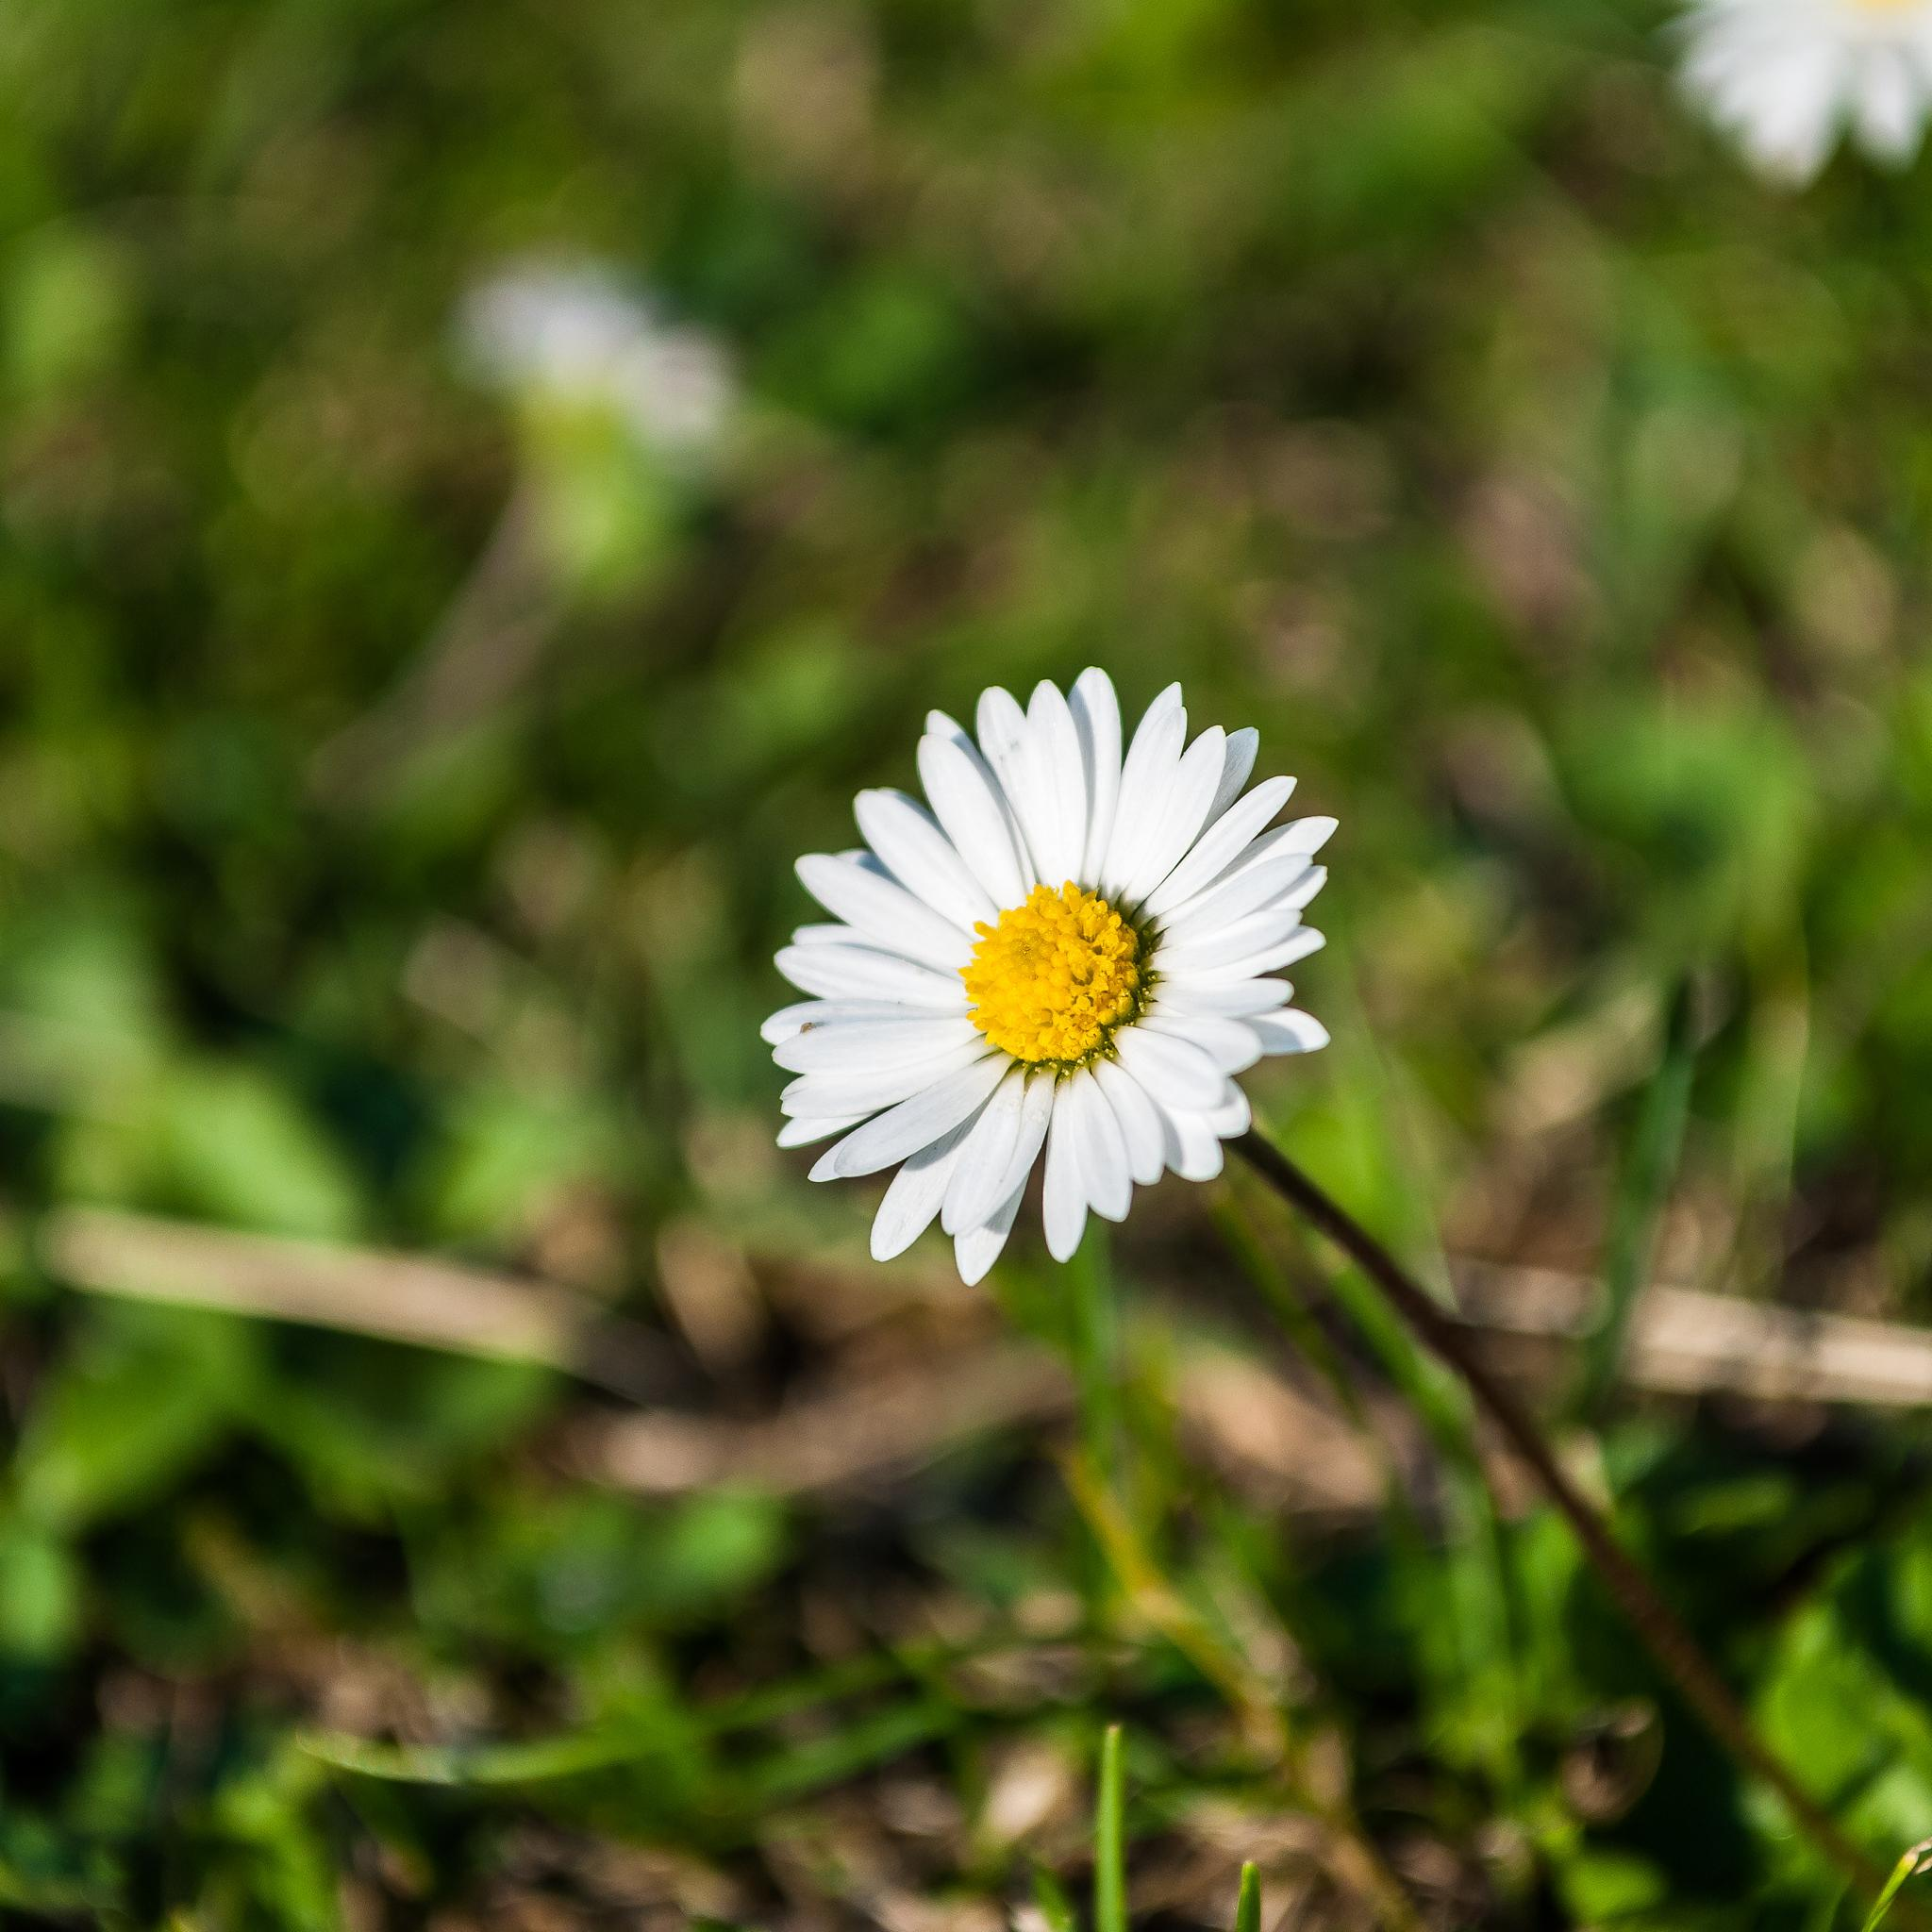 Daisy (Bellis) by Micke Seise